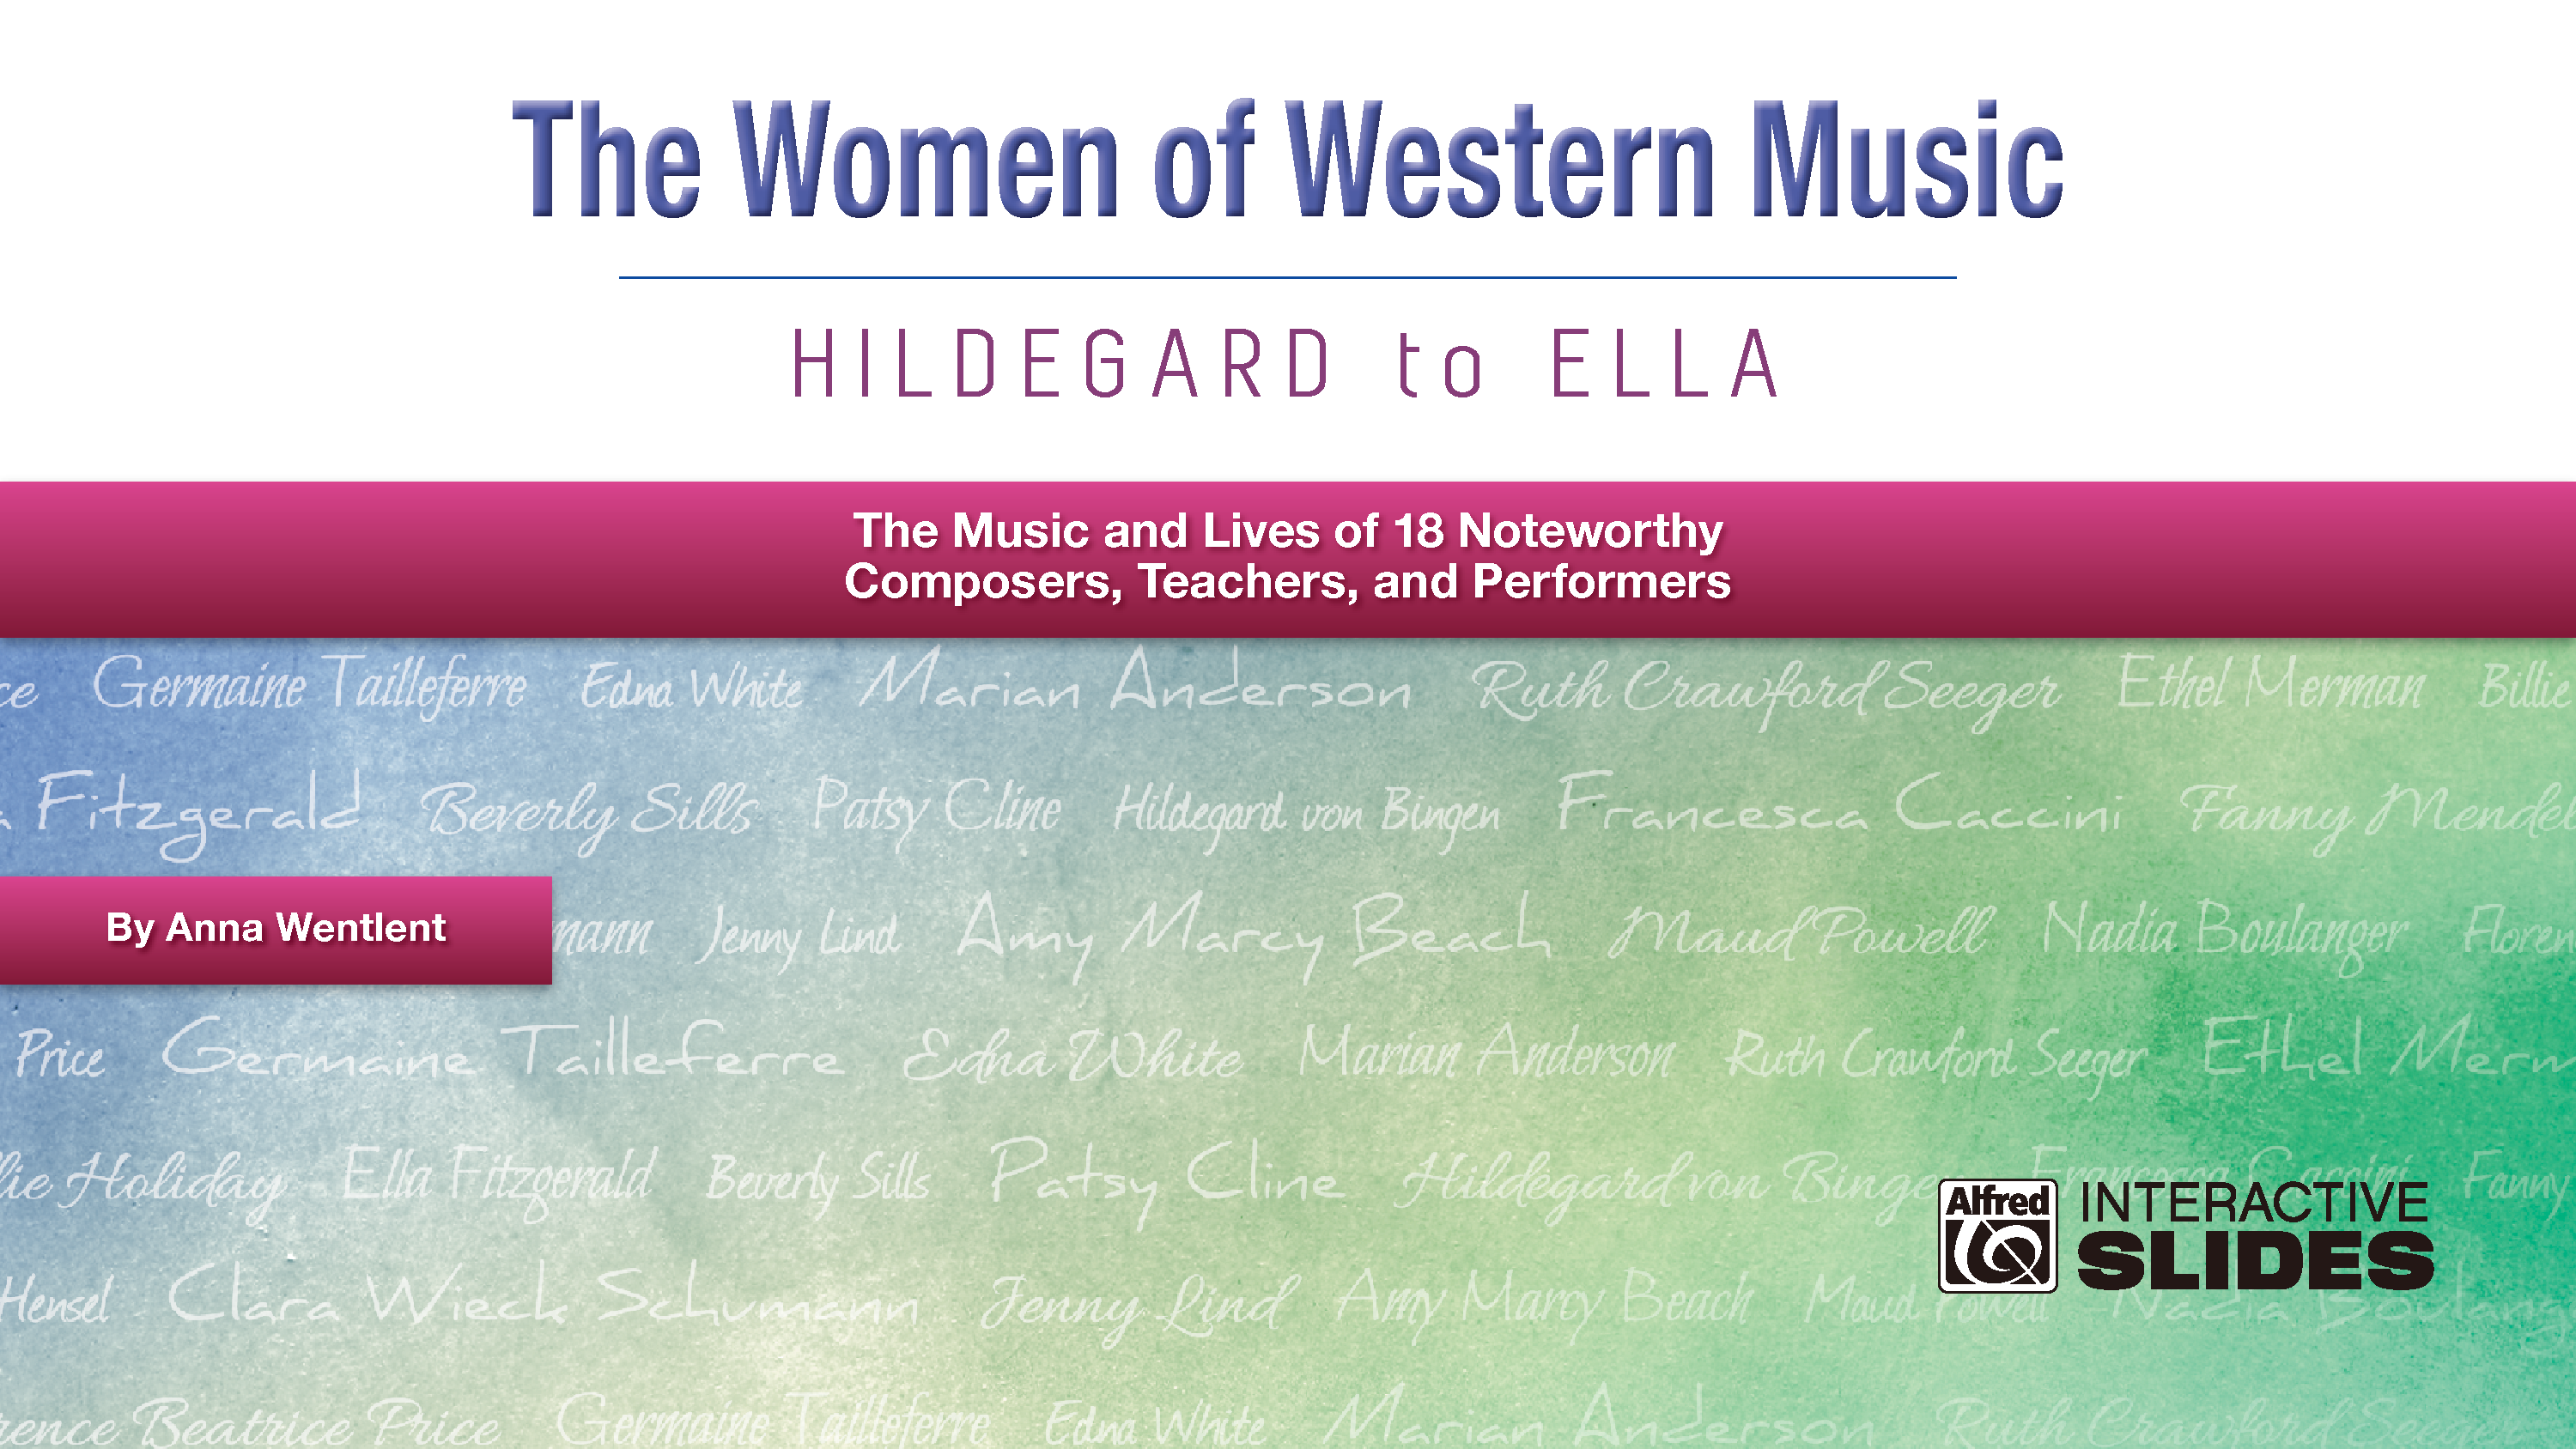 The Women of Western Music